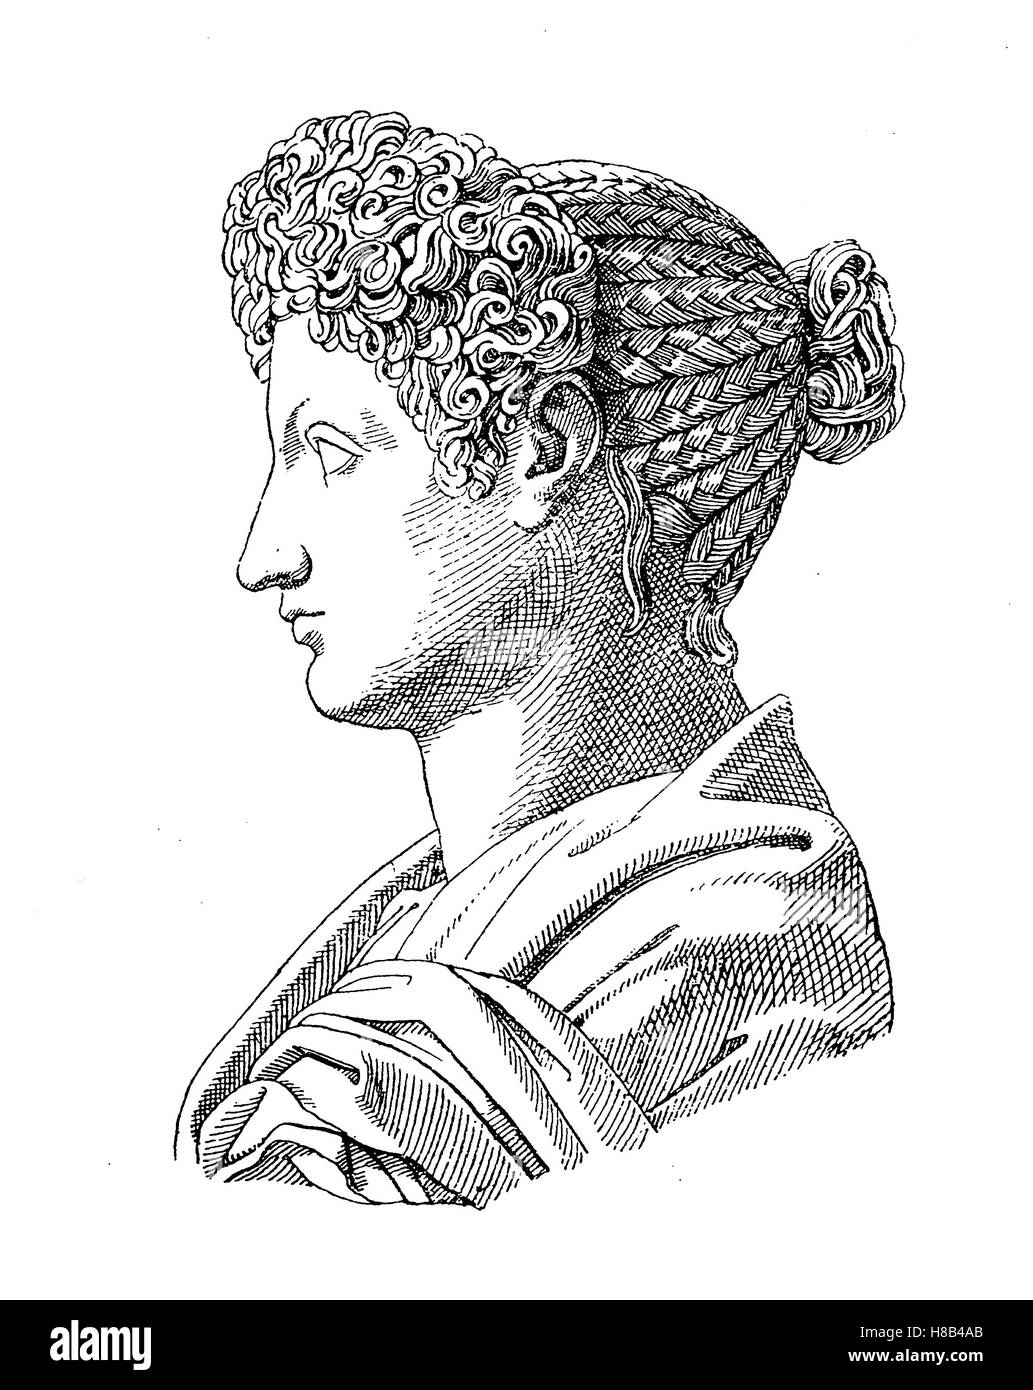 Julia, daughter of the Roman Emperor Titus, History of fashion, costume story - Stock Image